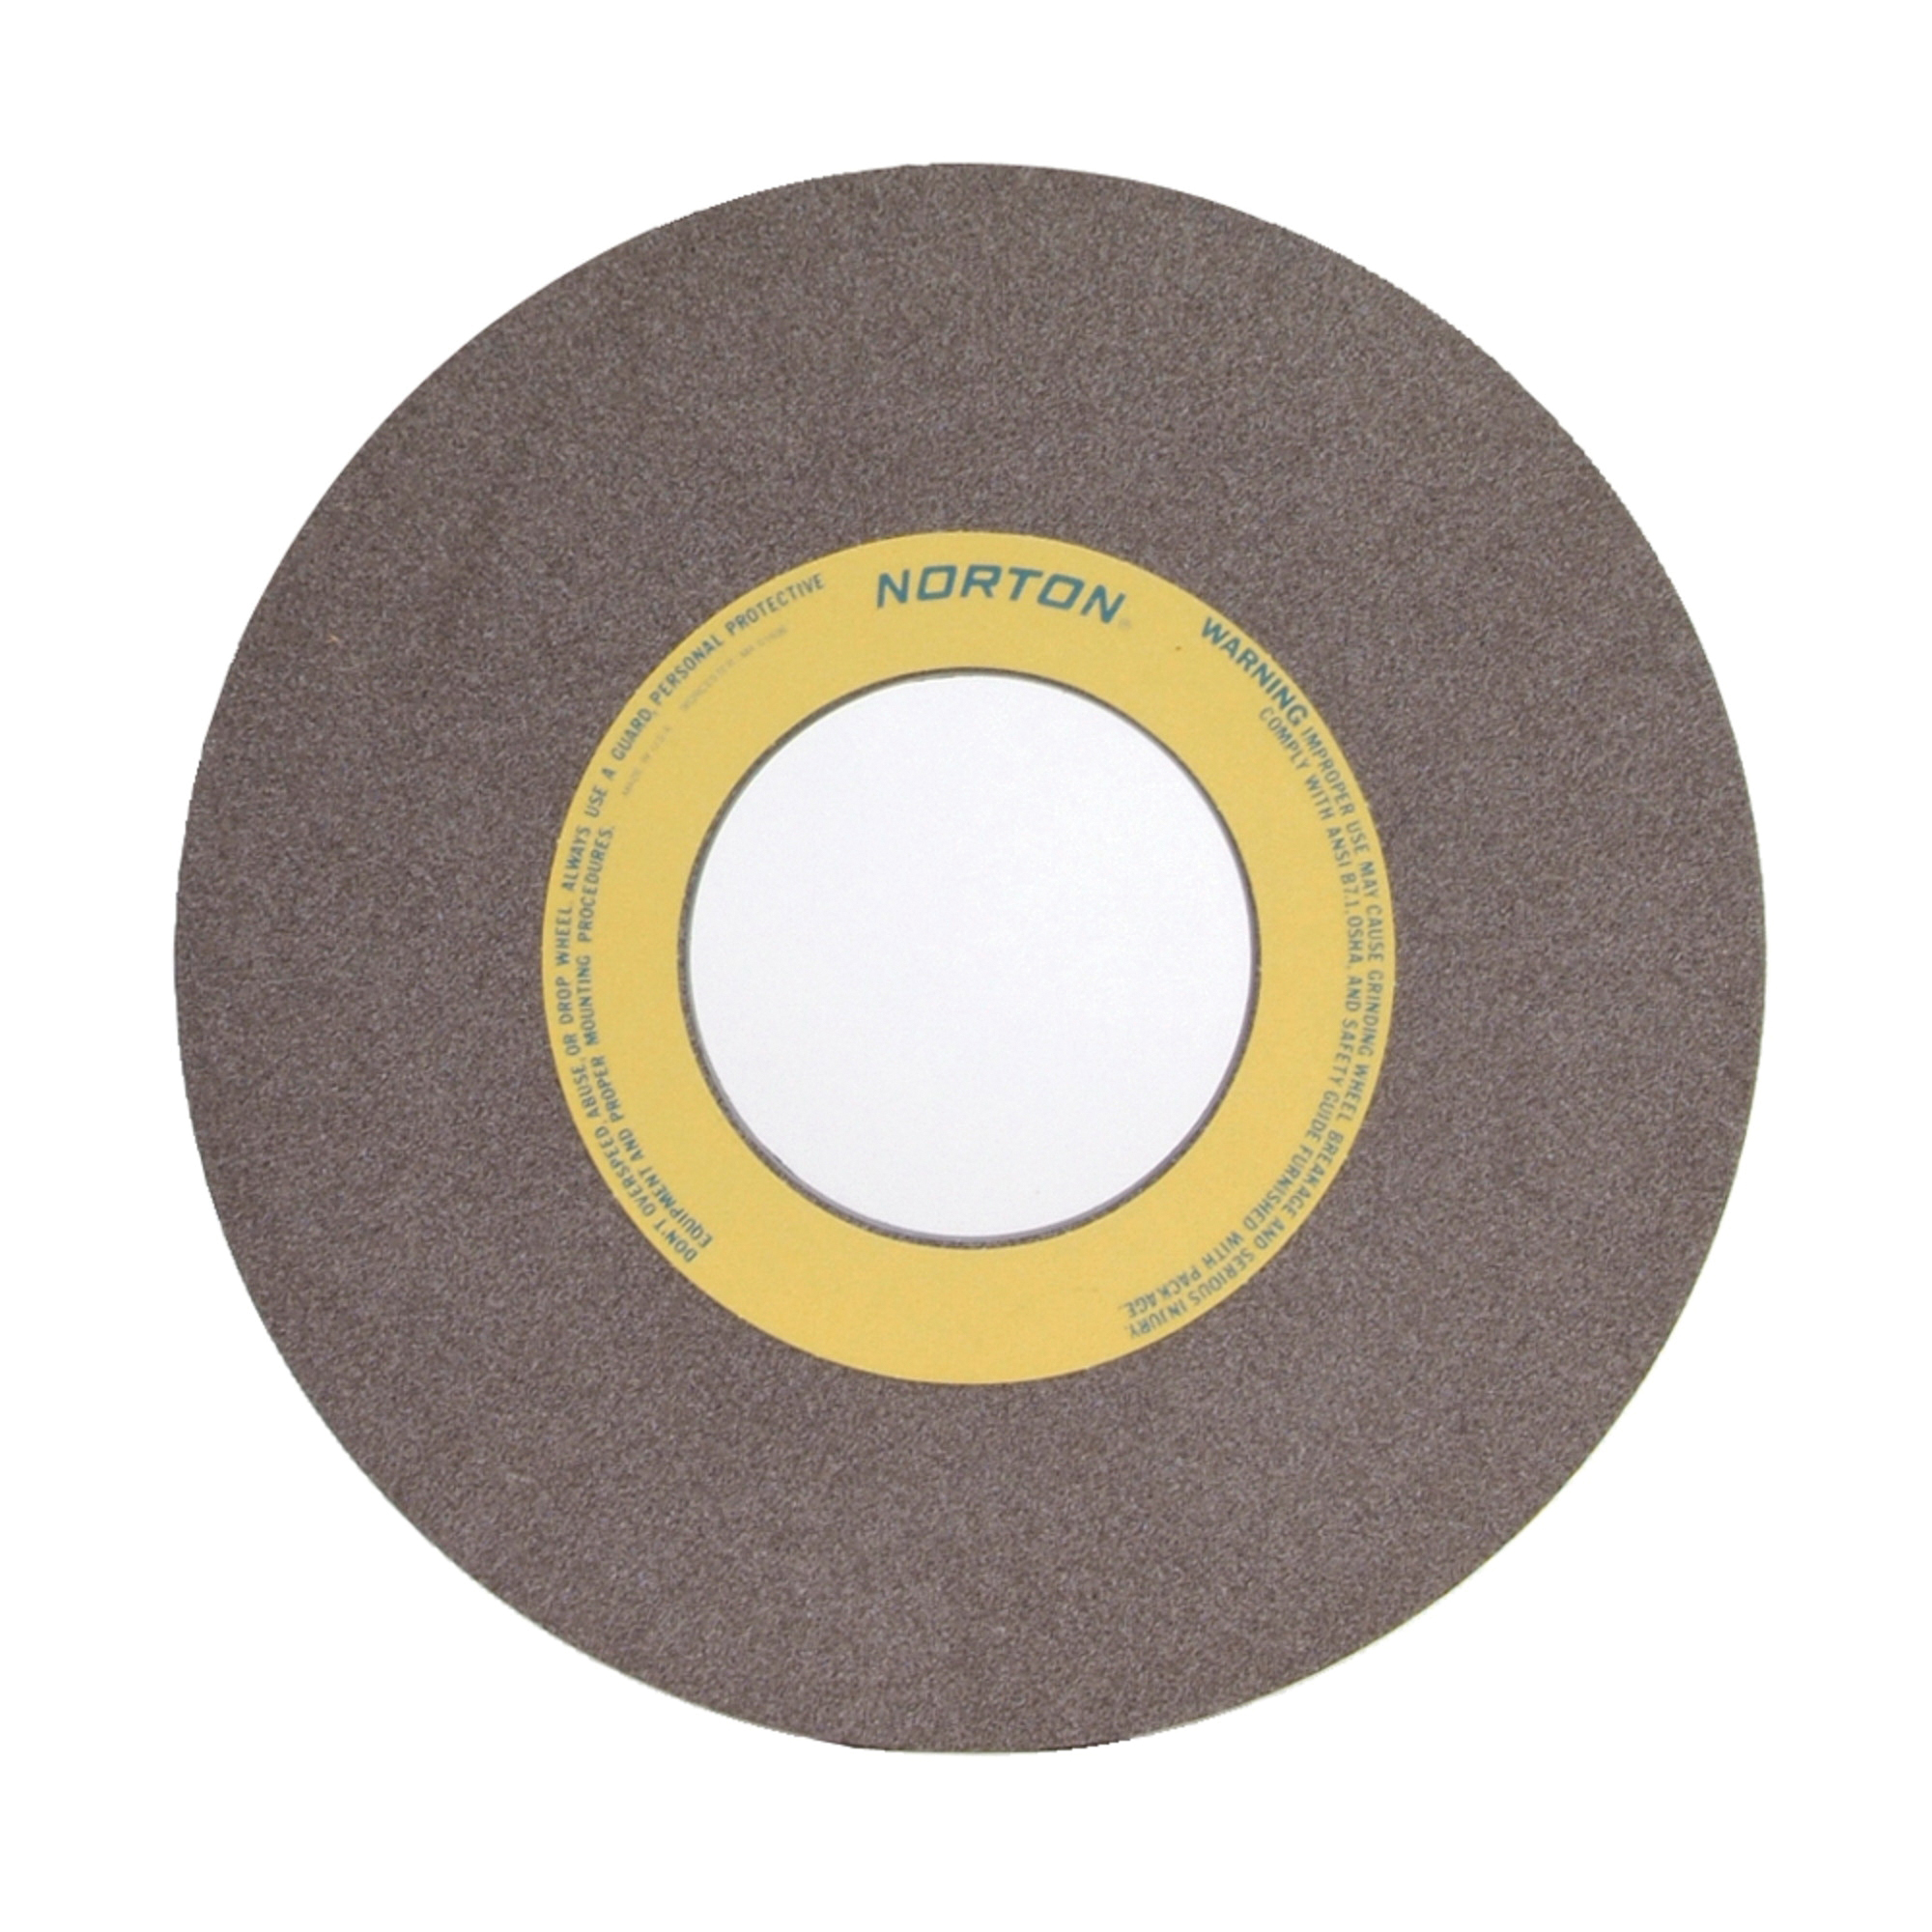 Norton® 66253364066 57A Straight Toolroom Wheel, 14 in Dia x 1 in THK, 5 in Center Hole, 60 Grit, Aluminum Oxide Abrasive